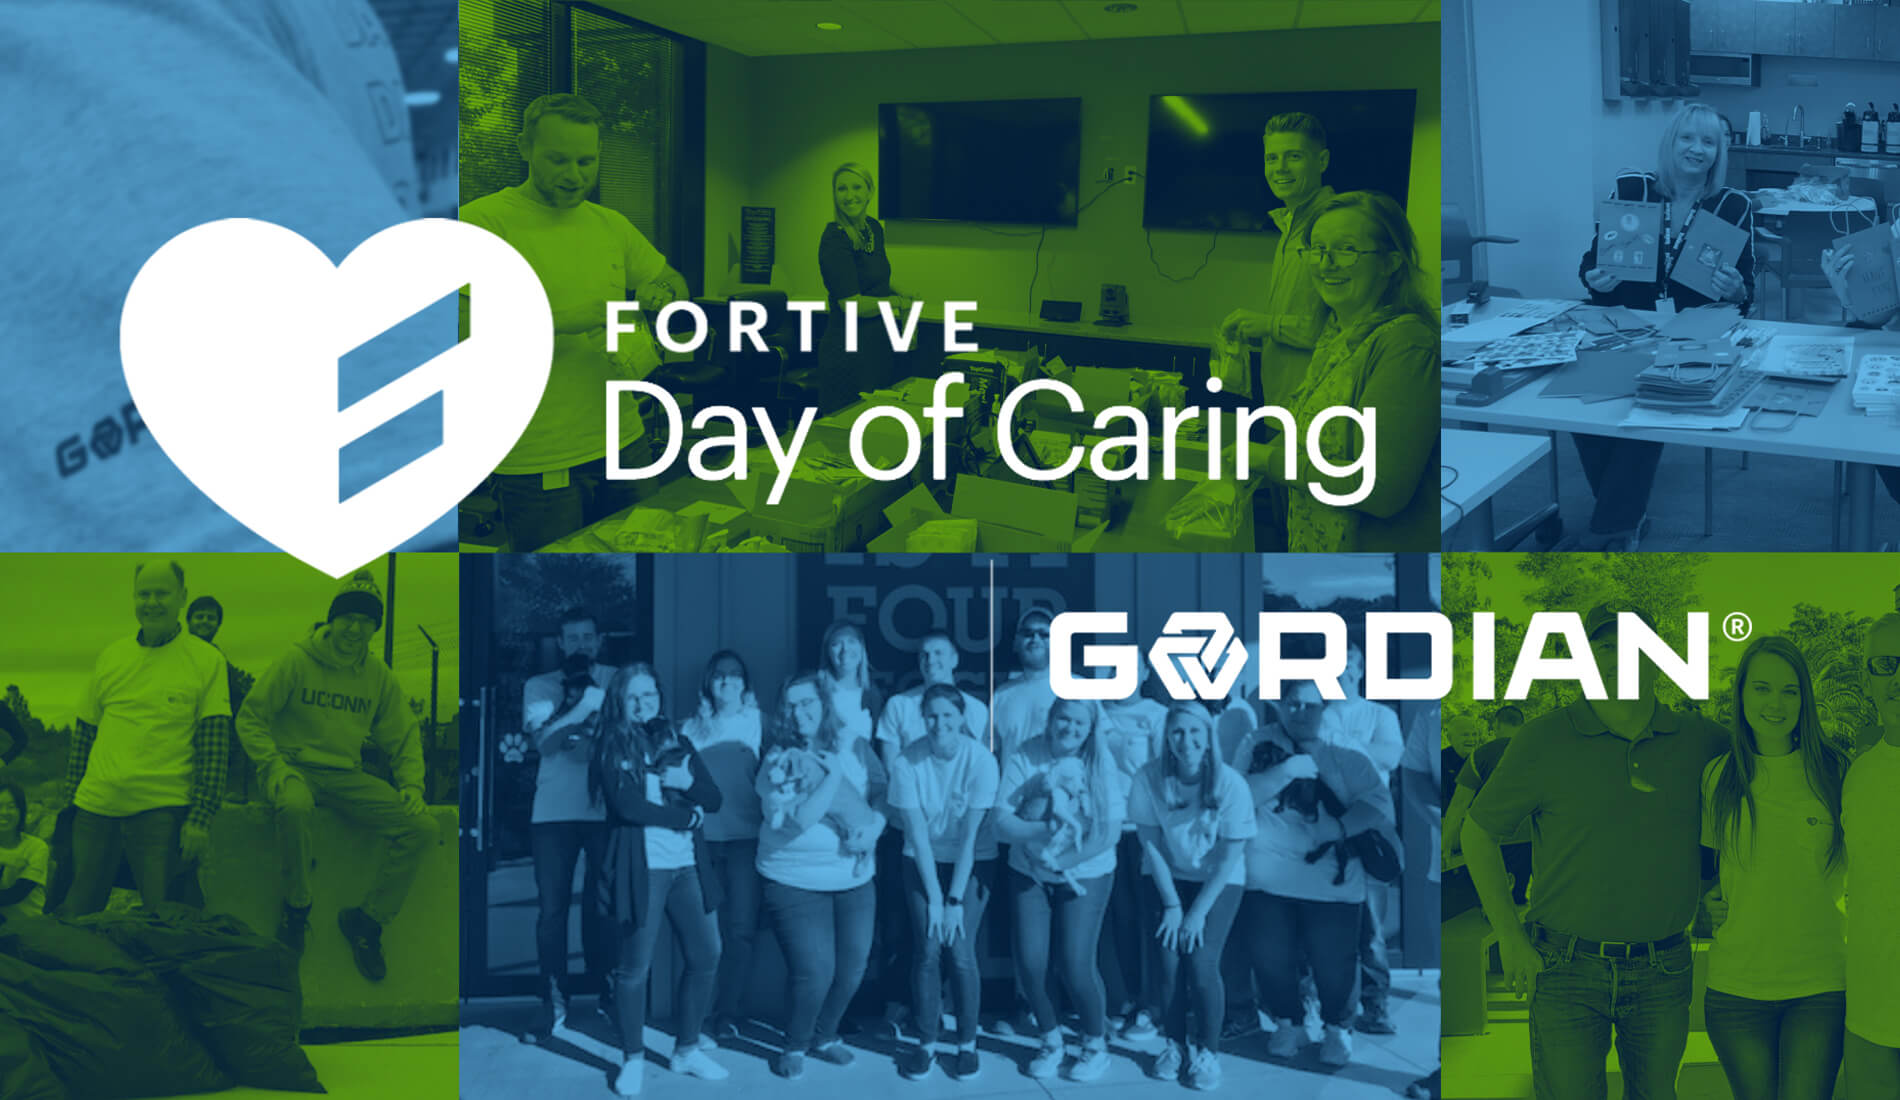 Gordian Gives During Fortive Day of Caring